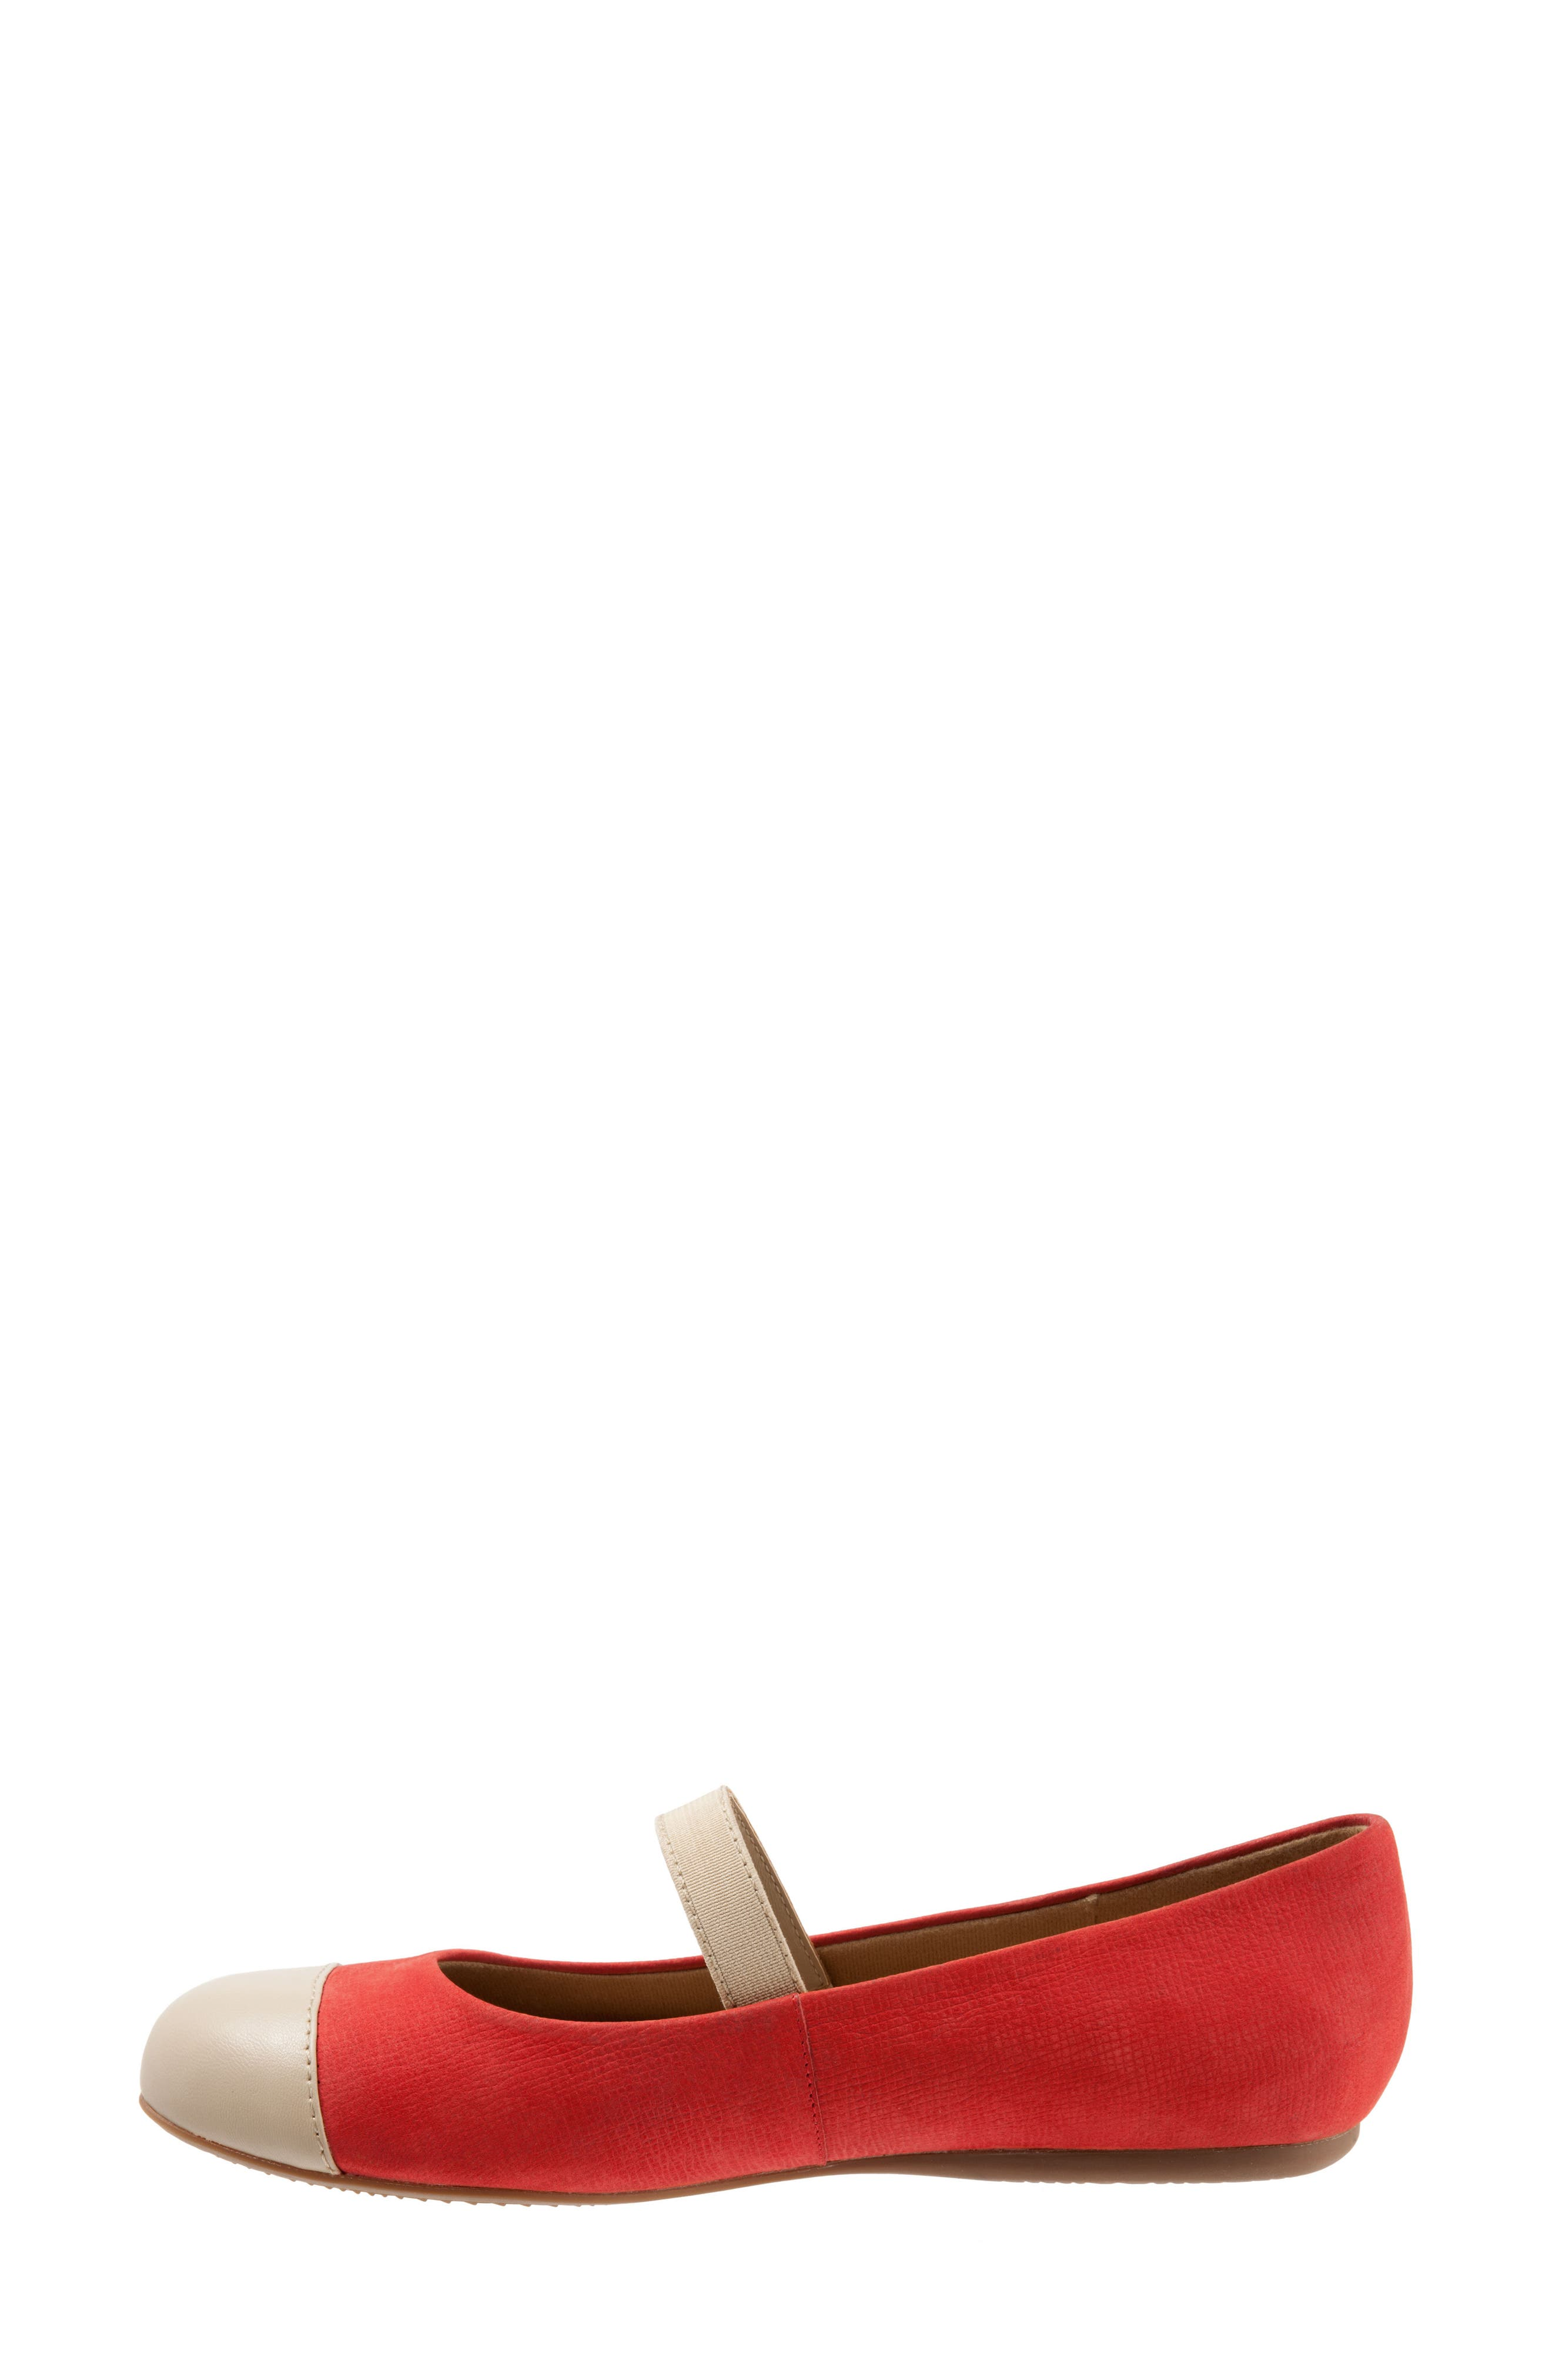 Napa Mary Jane Flat,                             Alternate thumbnail 4, color,                             Red/ Nude Leather